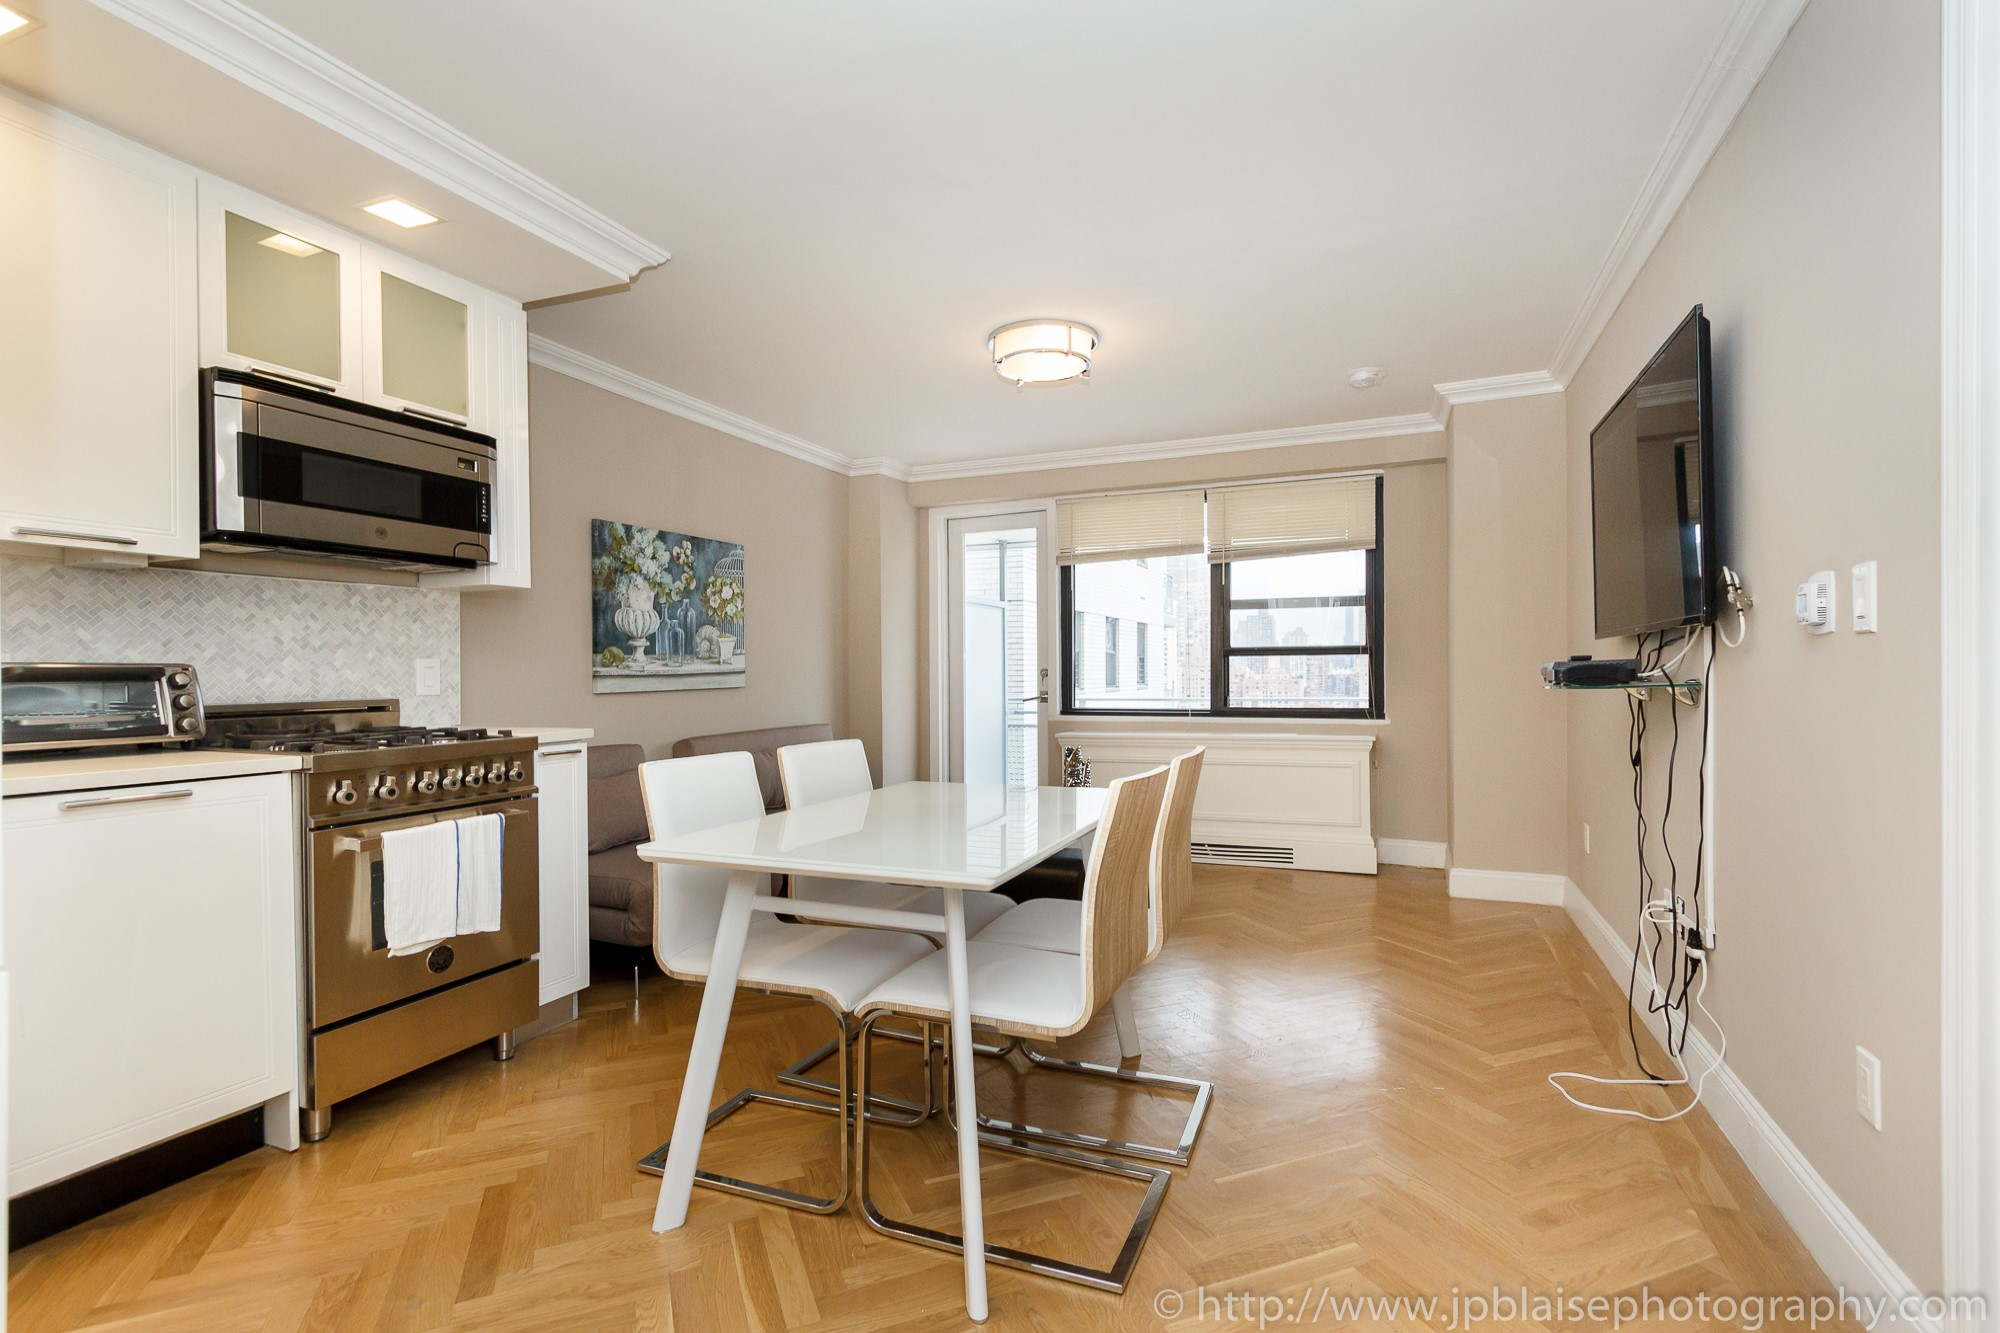 Studio Apartment Upper East Side Manhattan new york city interior photography session: modern one bedroom